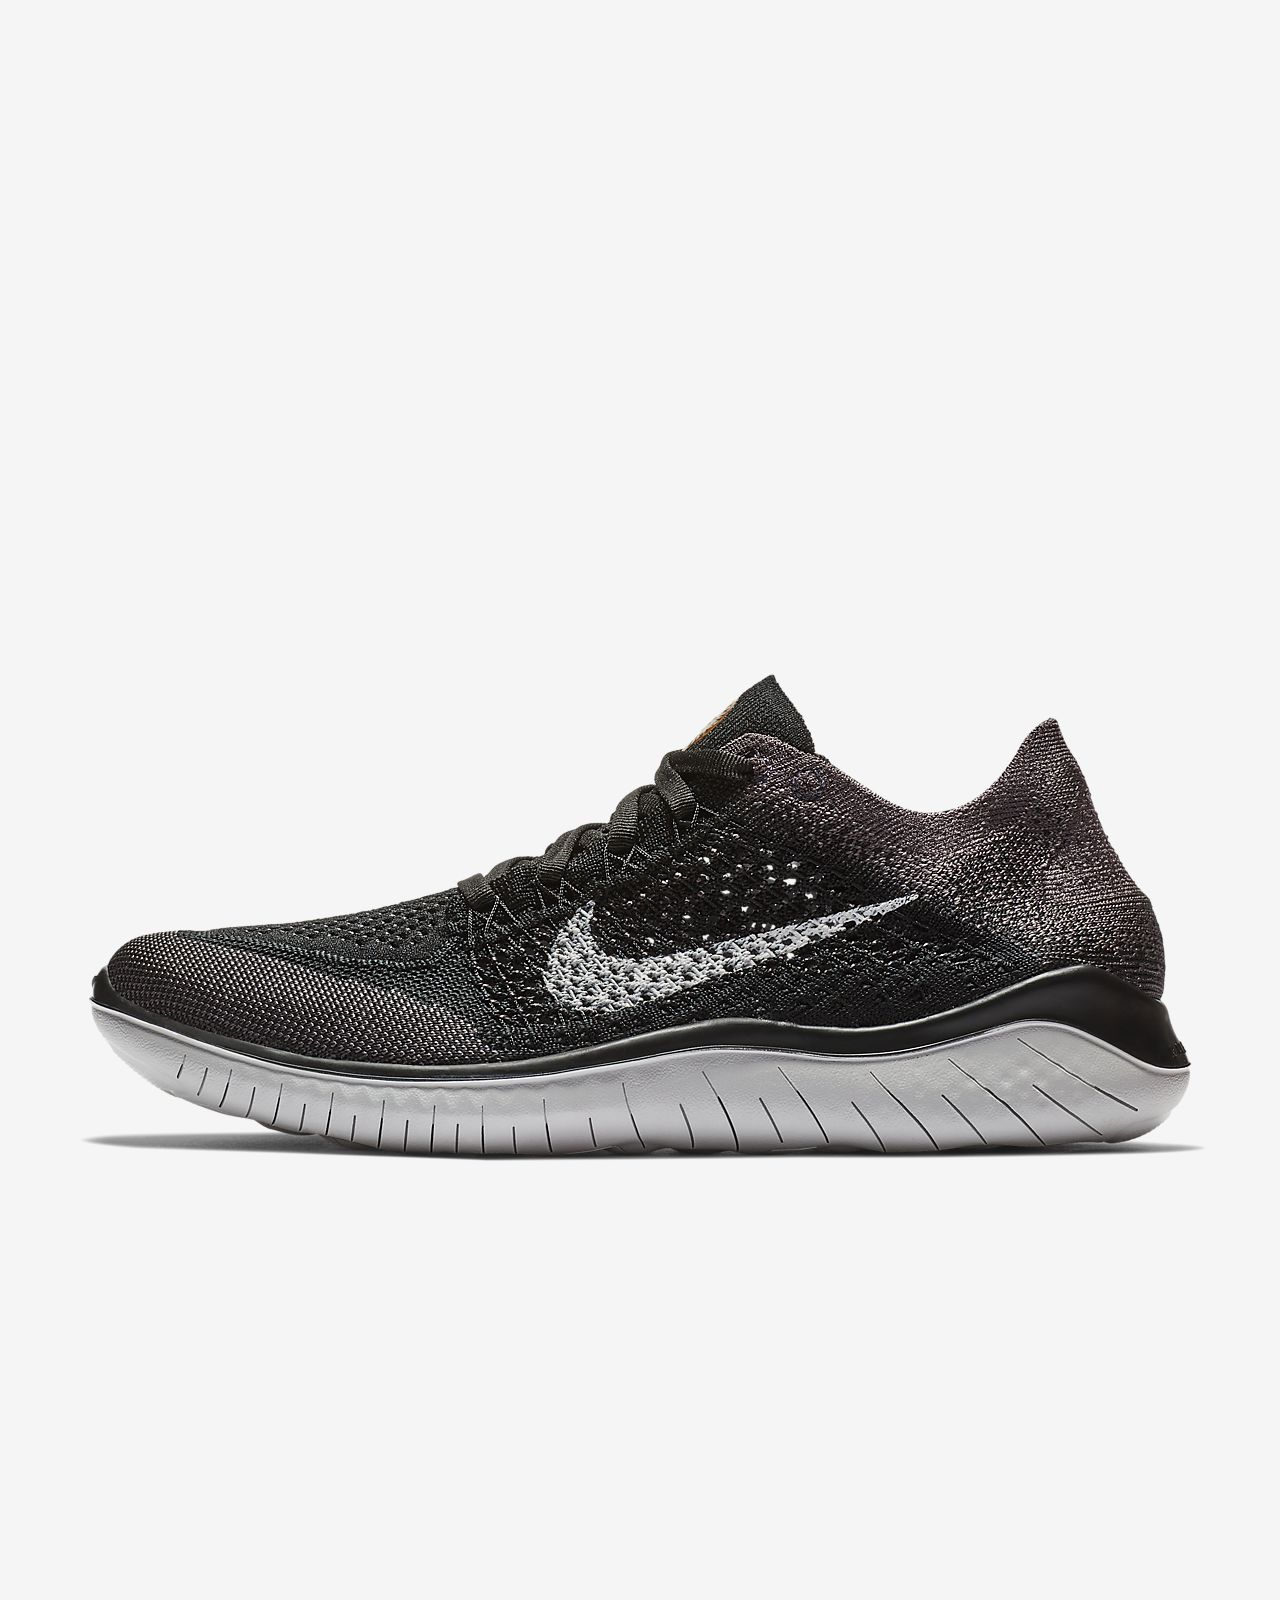 best service e8bed 48644 ... Nike Free RN Flyknit 2018 Women s Running Shoe